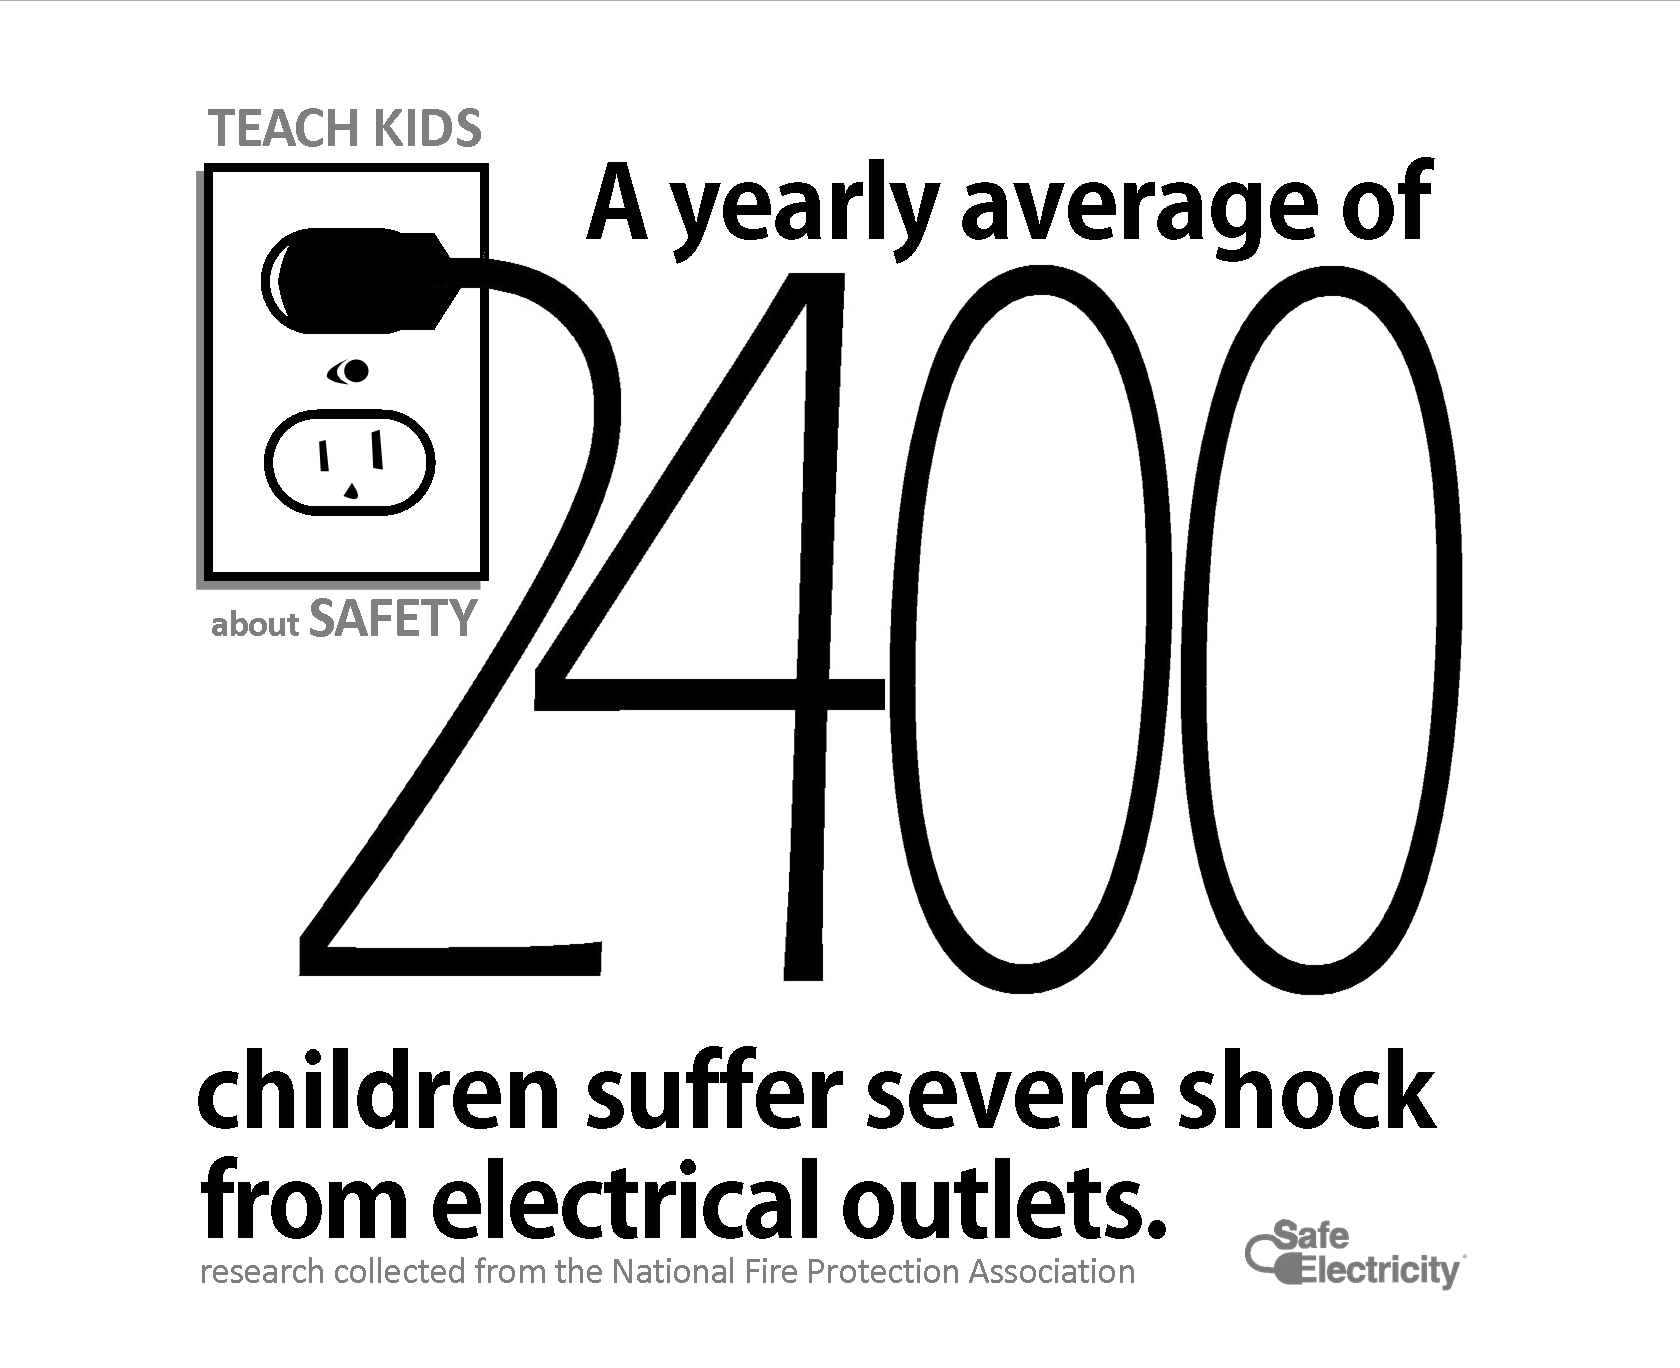 A yearly average of 2,400 children suffer severe shock